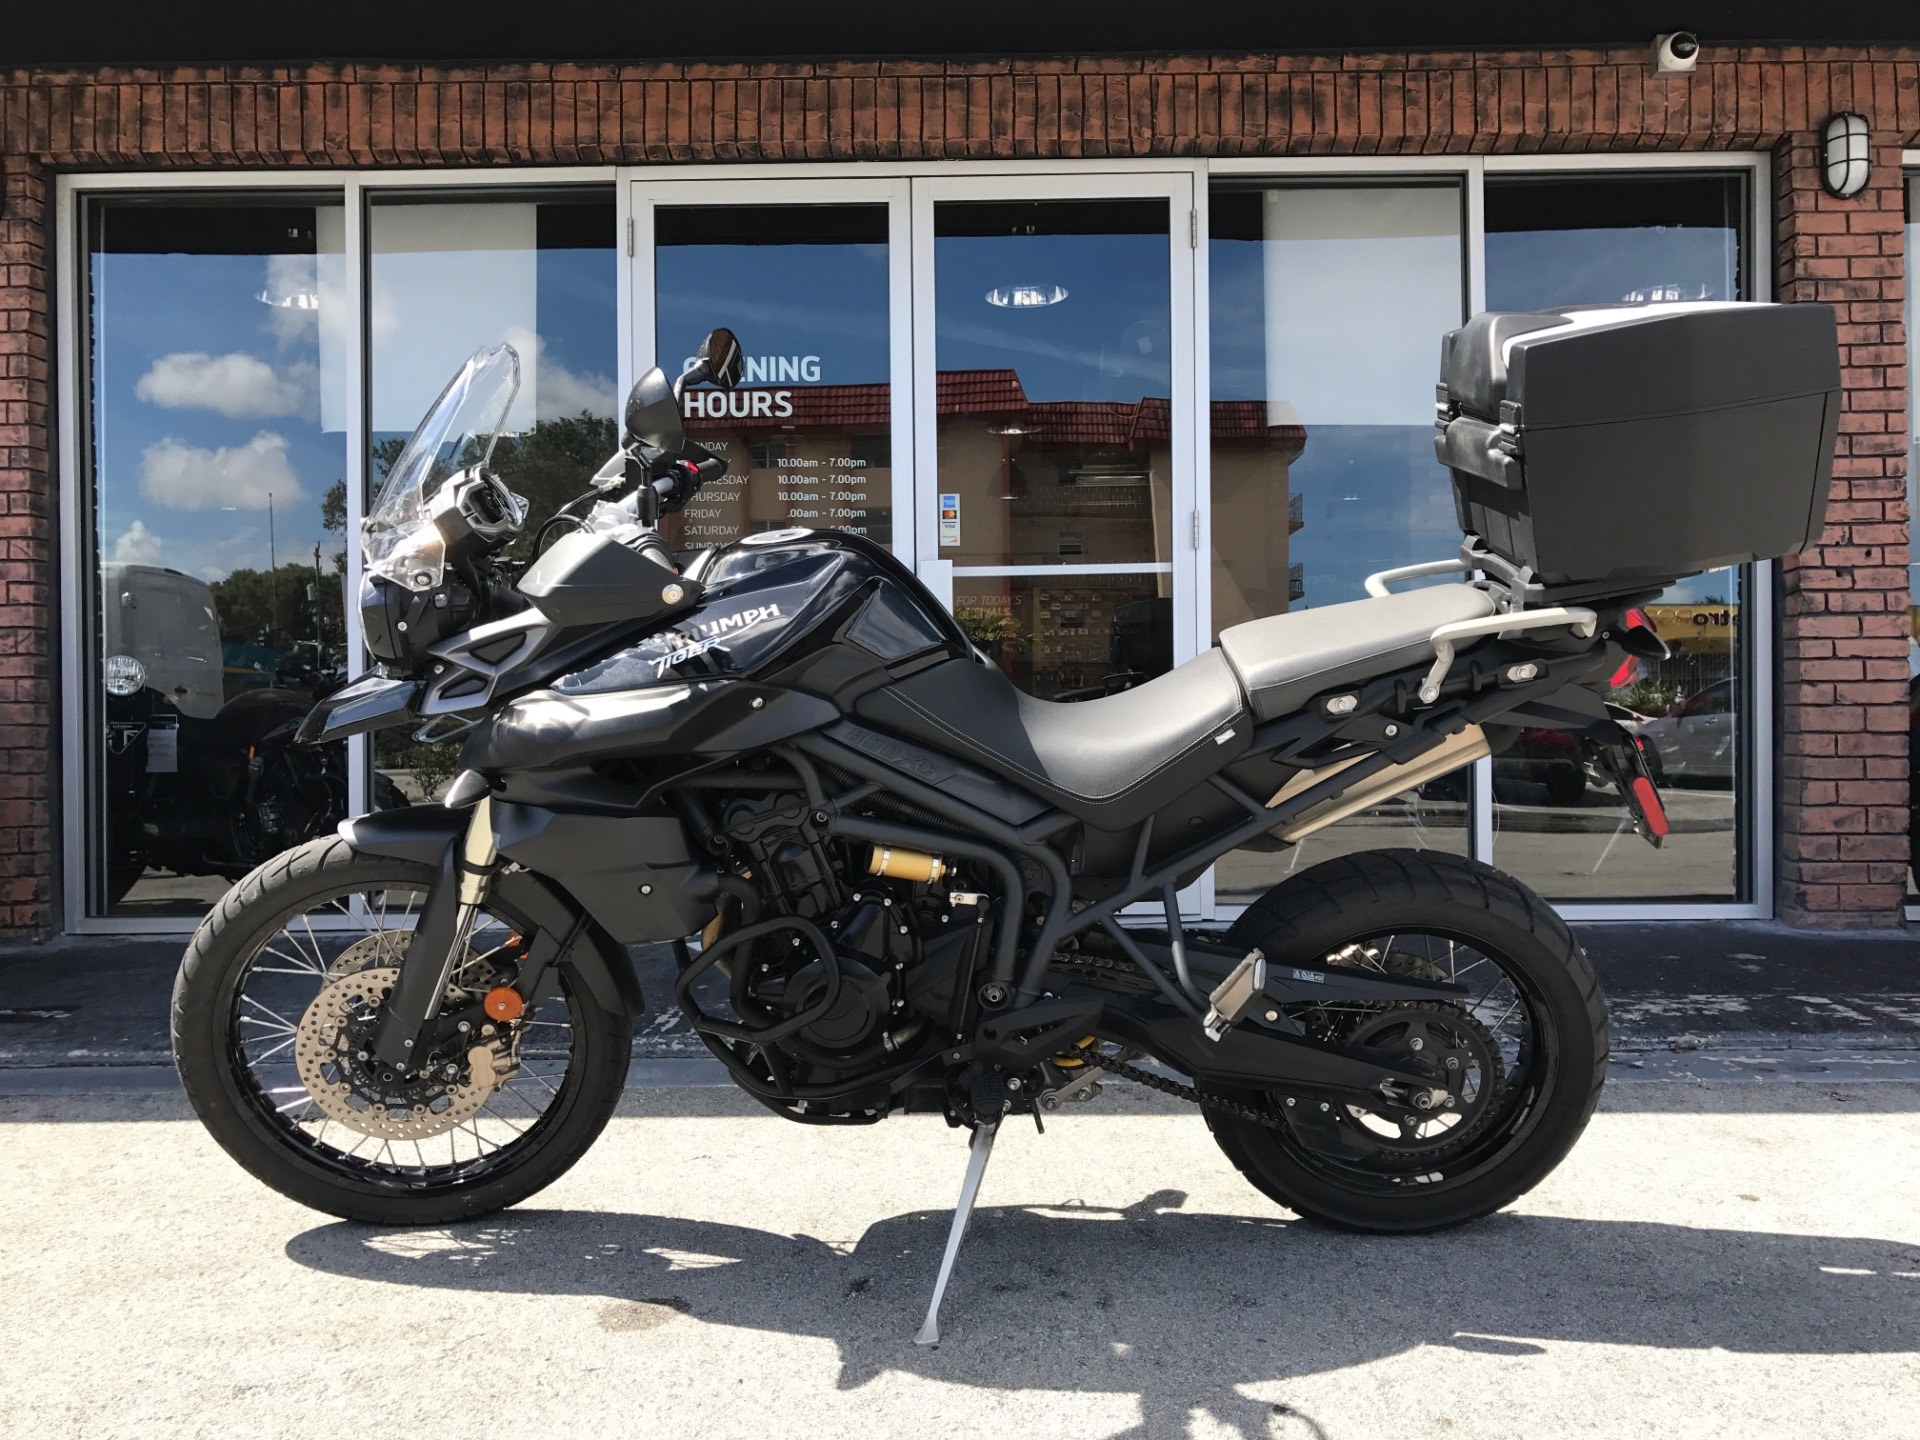 2013 Triumph Tiger 800 XC ABS in Miami, Florida